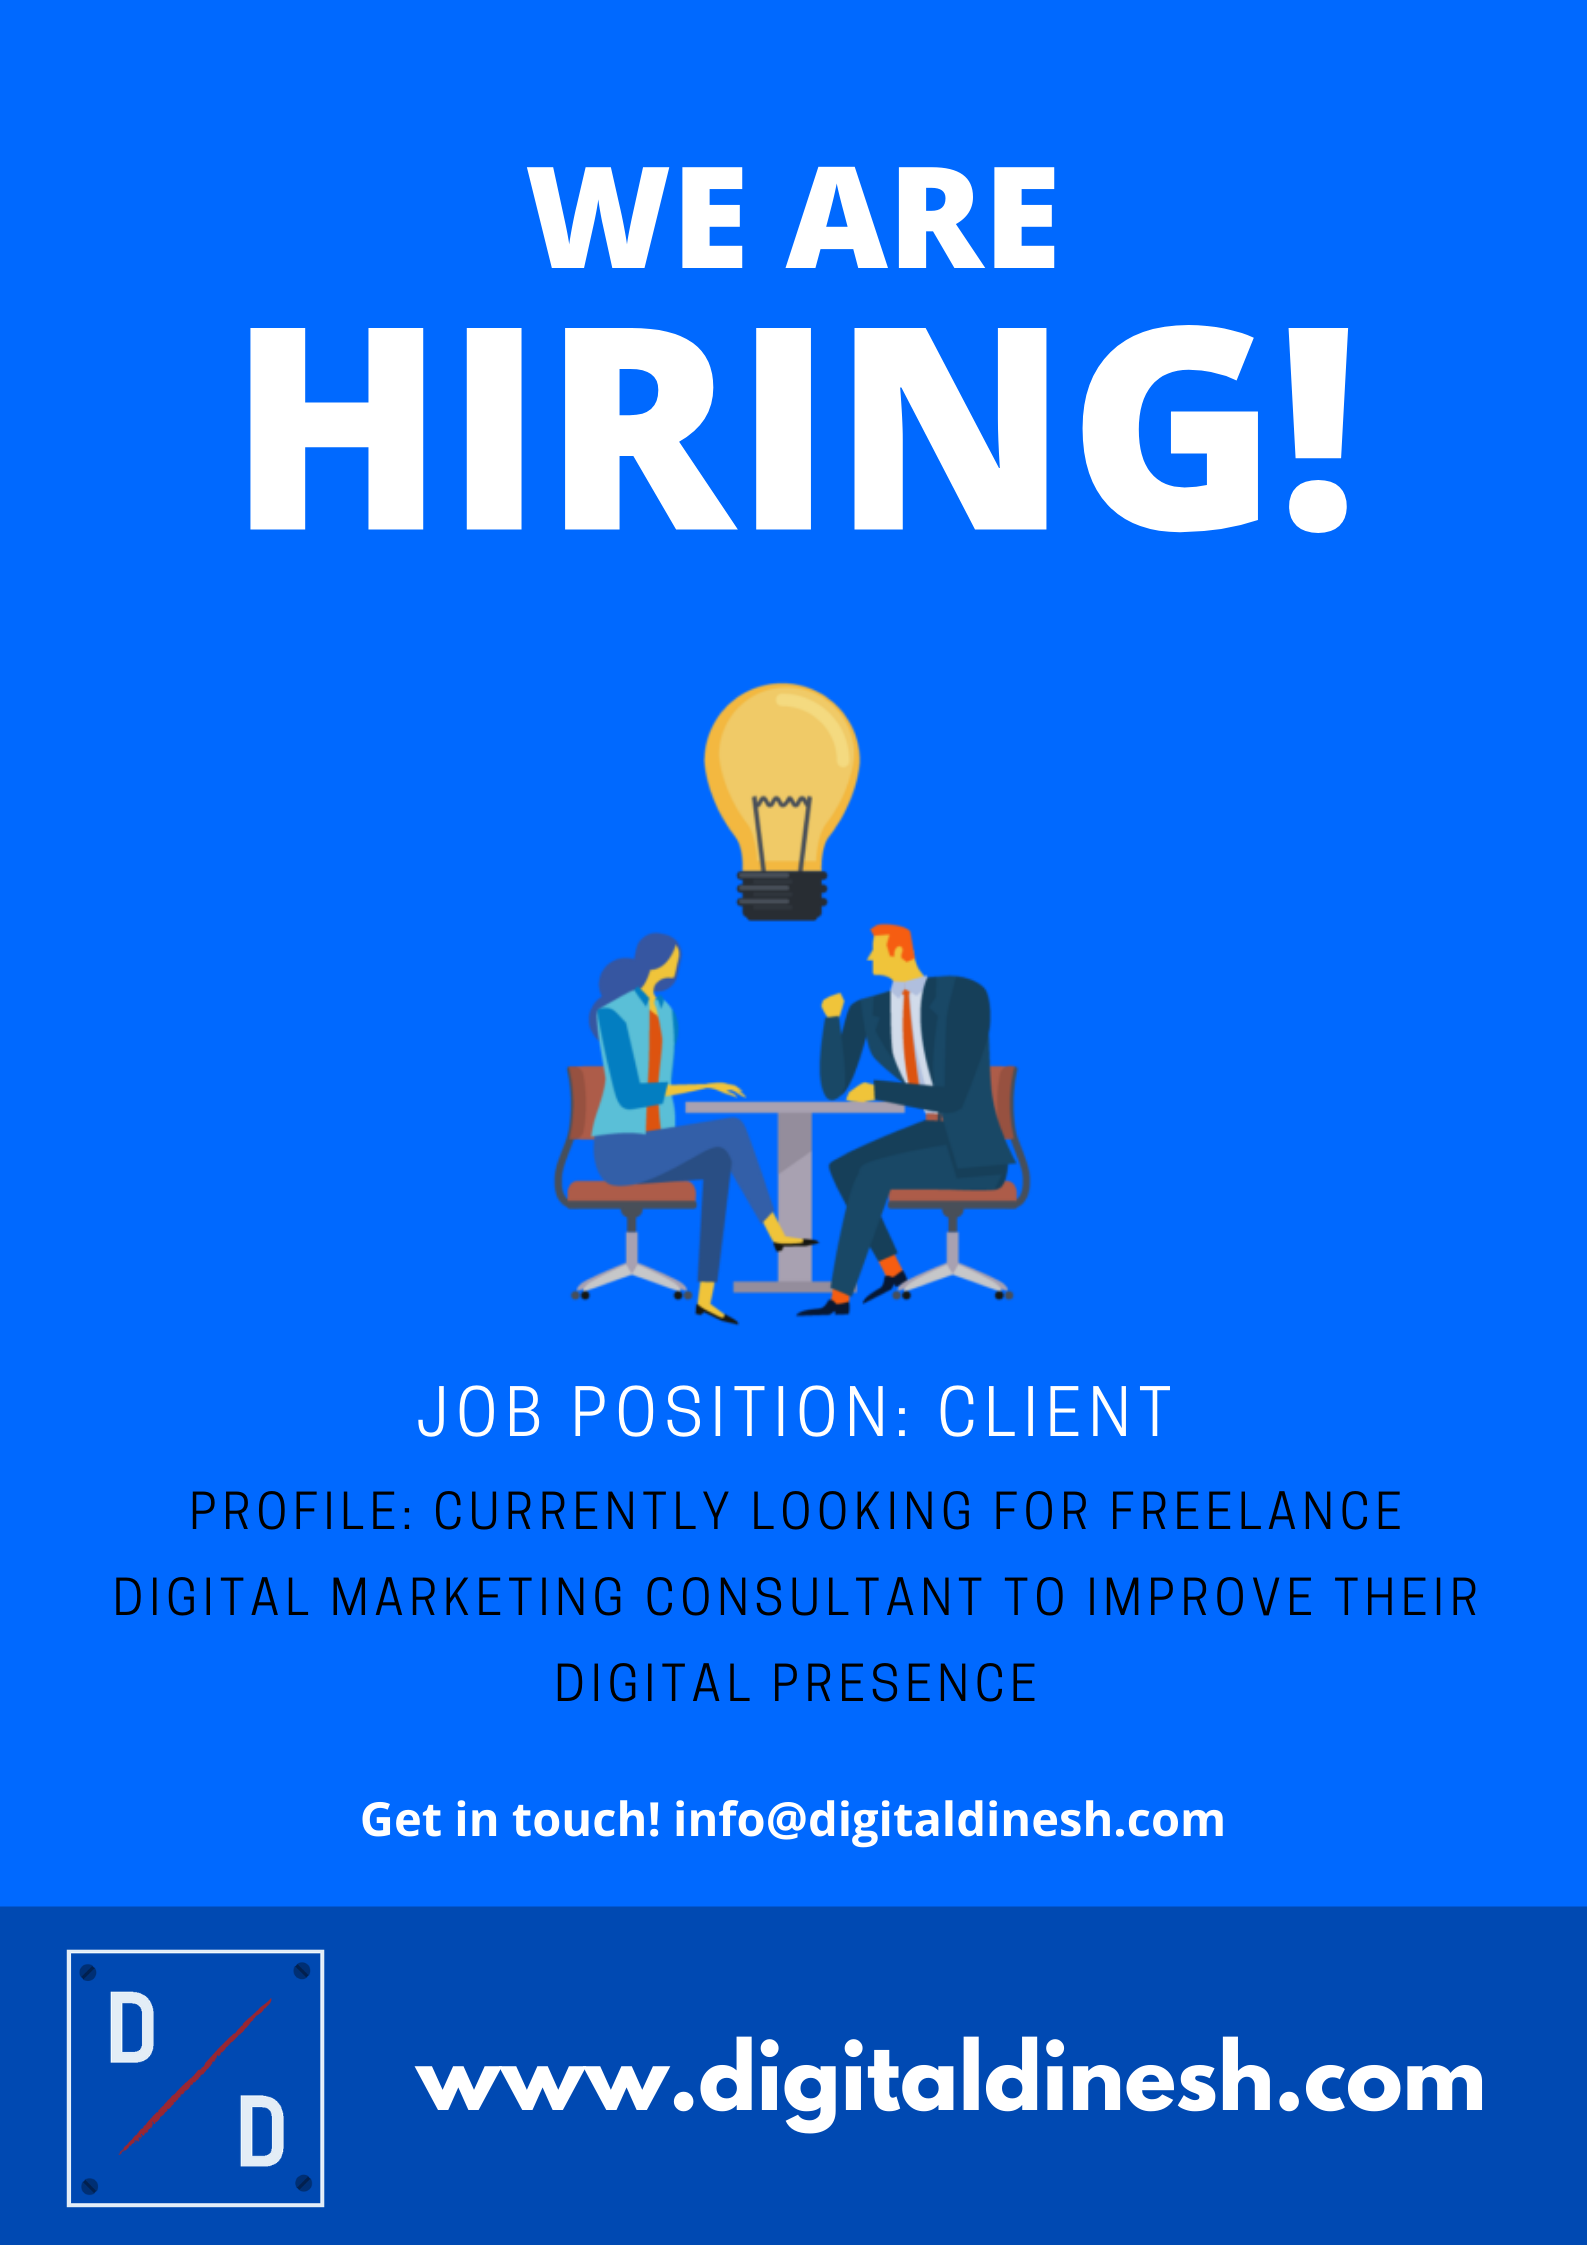 We are hiring for business